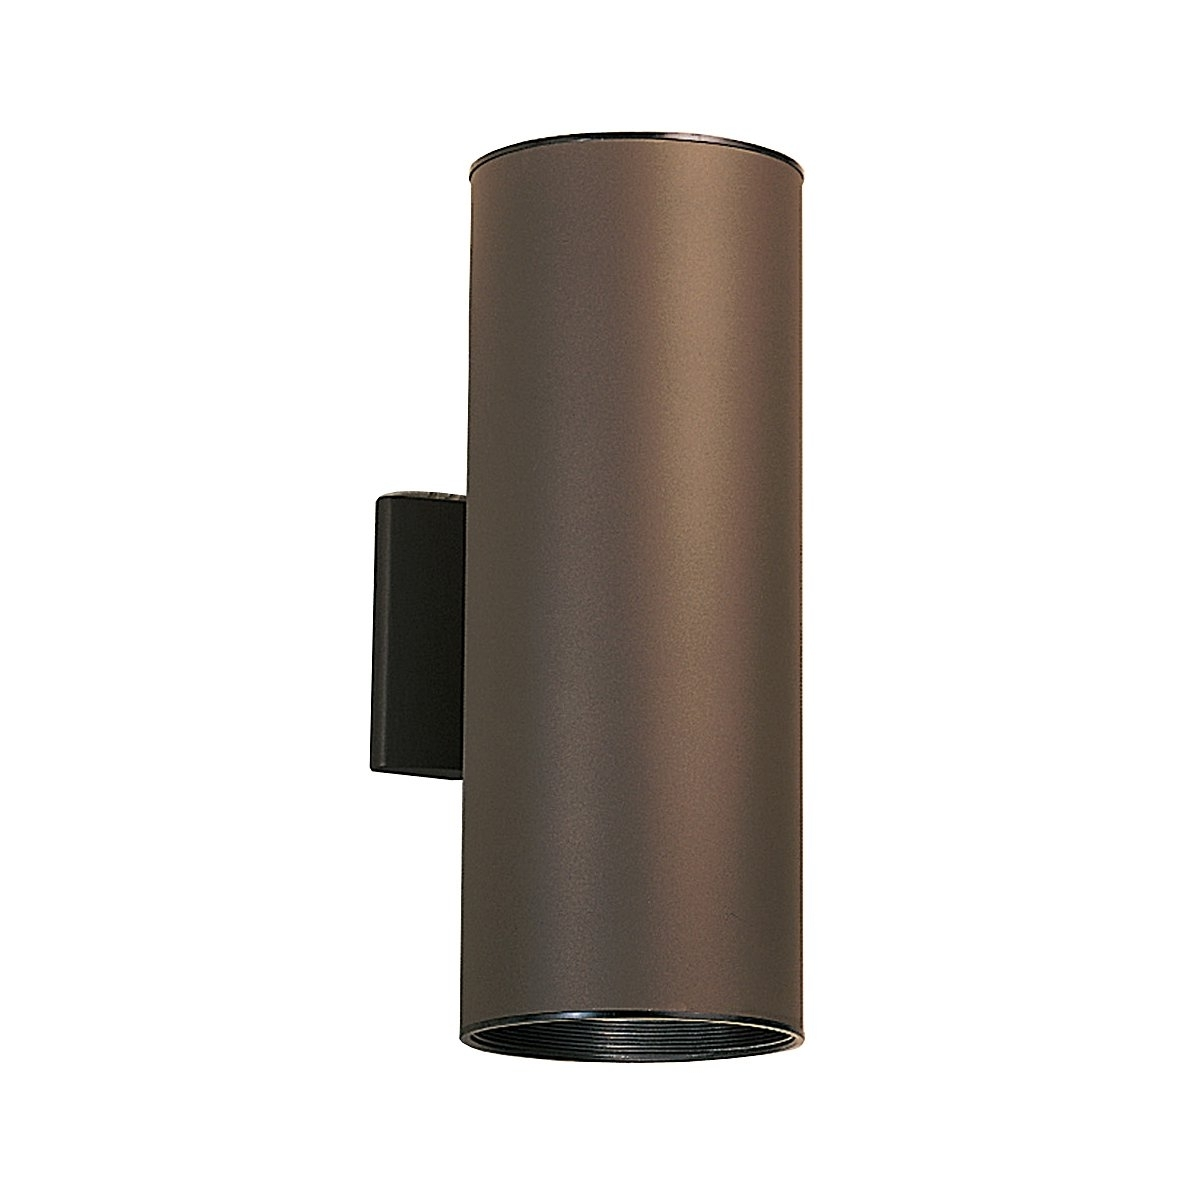 Favorite Commercial Led Outdoor Wall Lighting With Regard To Light : Wooden Commercial Exterior Wall Lights Brown Simple Stunning (View 2 of 20)